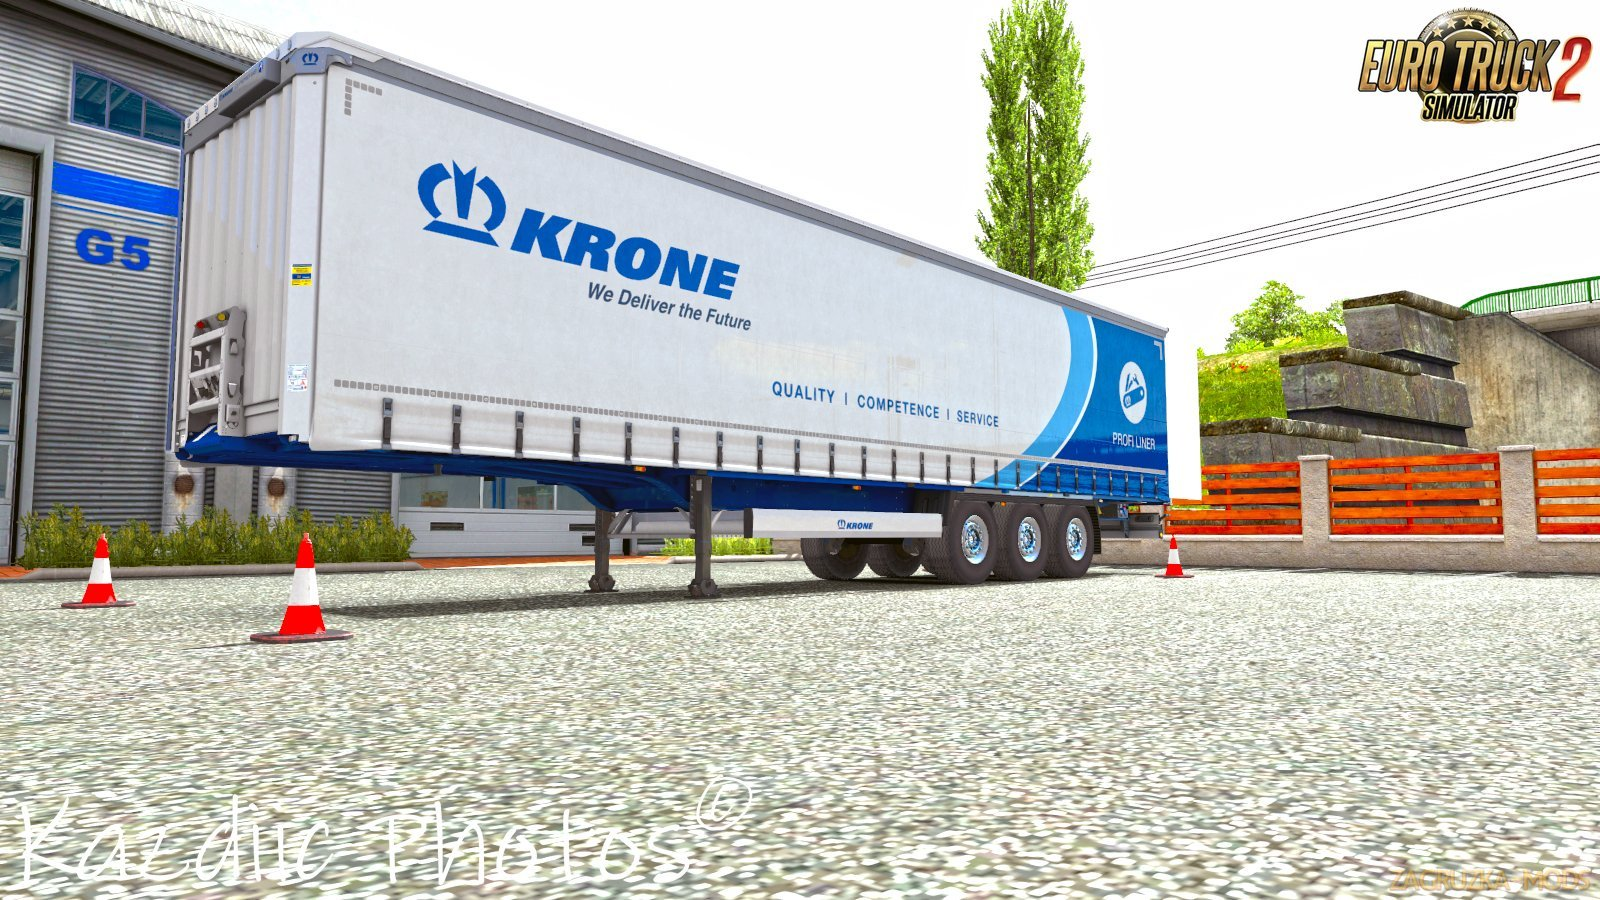 Krone Trailer Open by Kazdiic